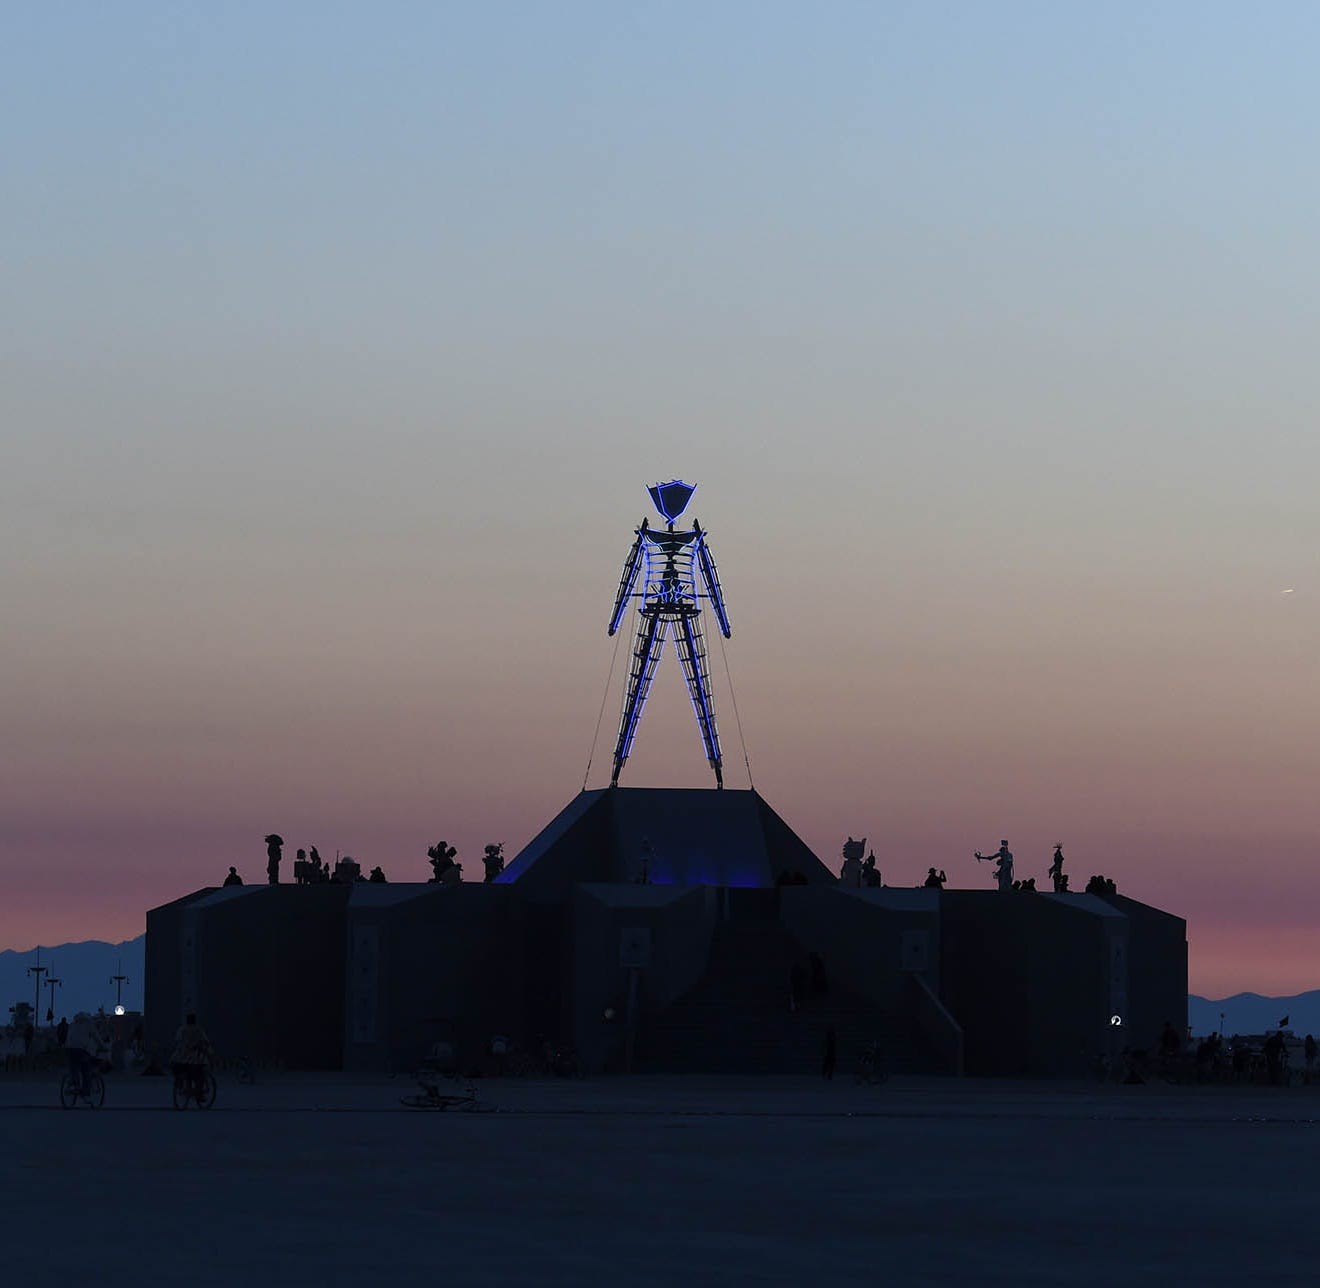 Burning Man 2018: Your ultimate guide to photos and stories